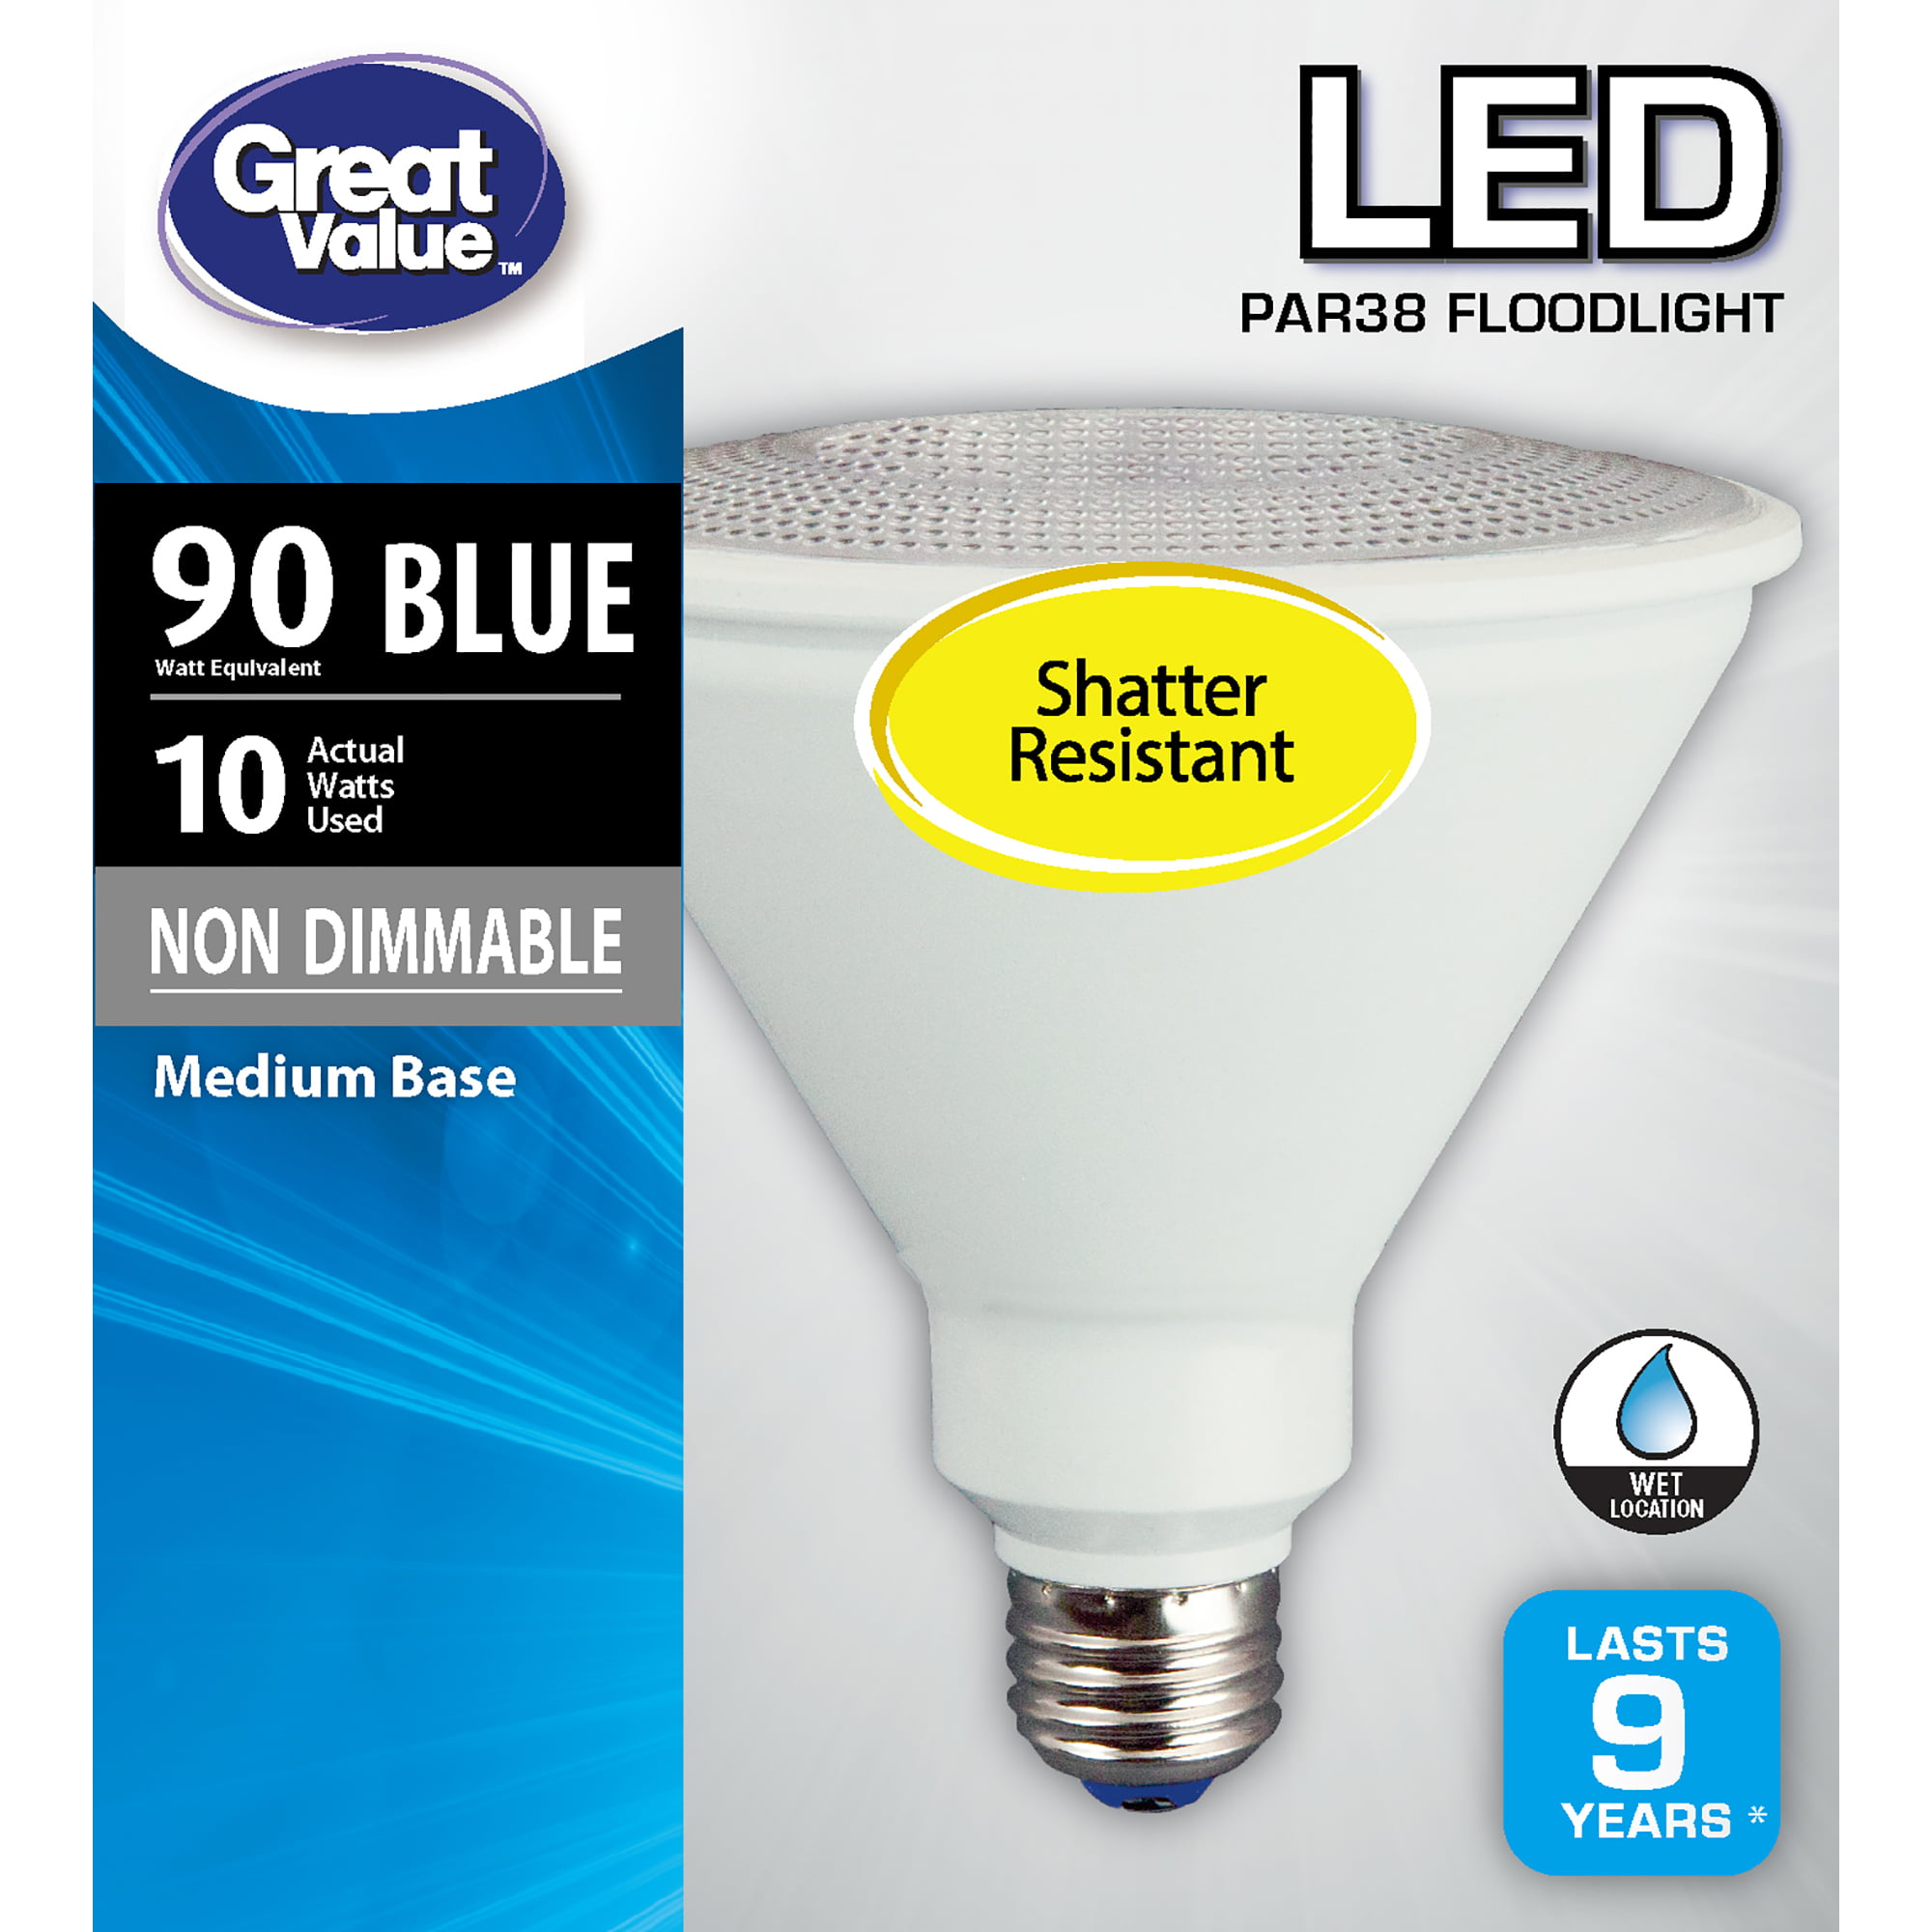 Great Value Led Light Bulb 10 Watts 90w Equivalent Par38 Floodlight Lamp E26 Medium Base Non Dimmable Blue 1 Pack Walmart Com Walmart Com